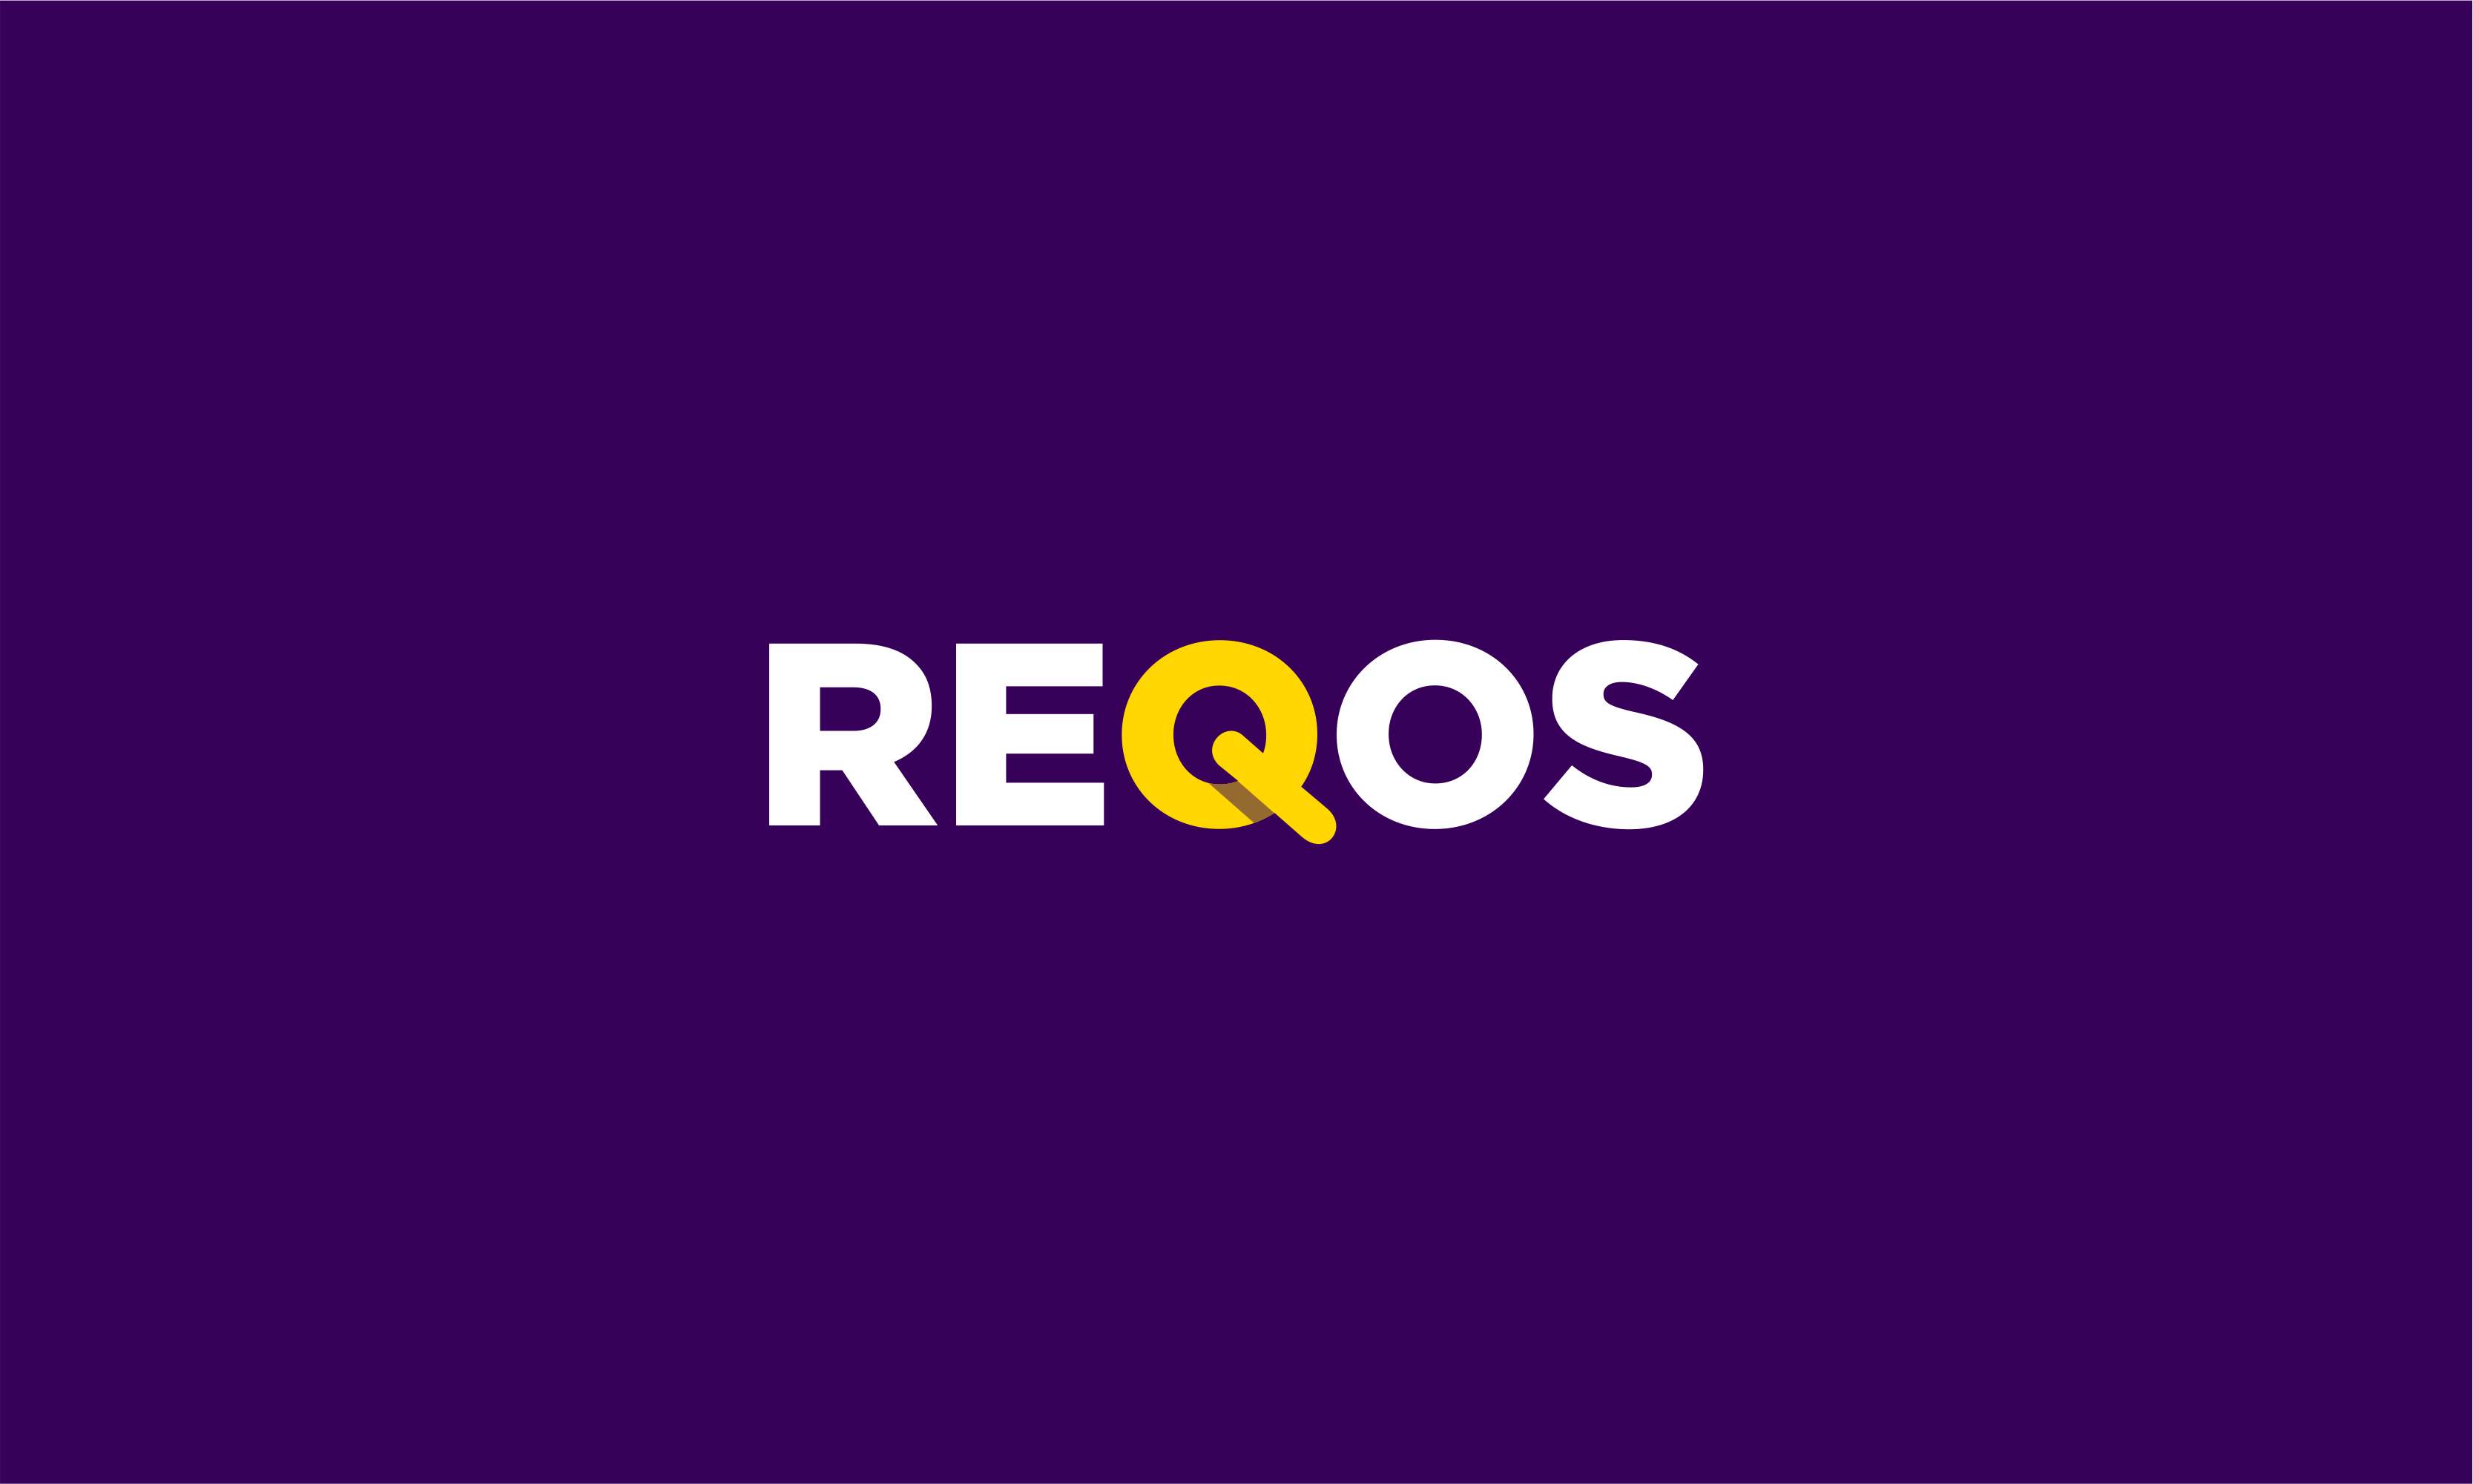 Reqos - Business brand name for sale